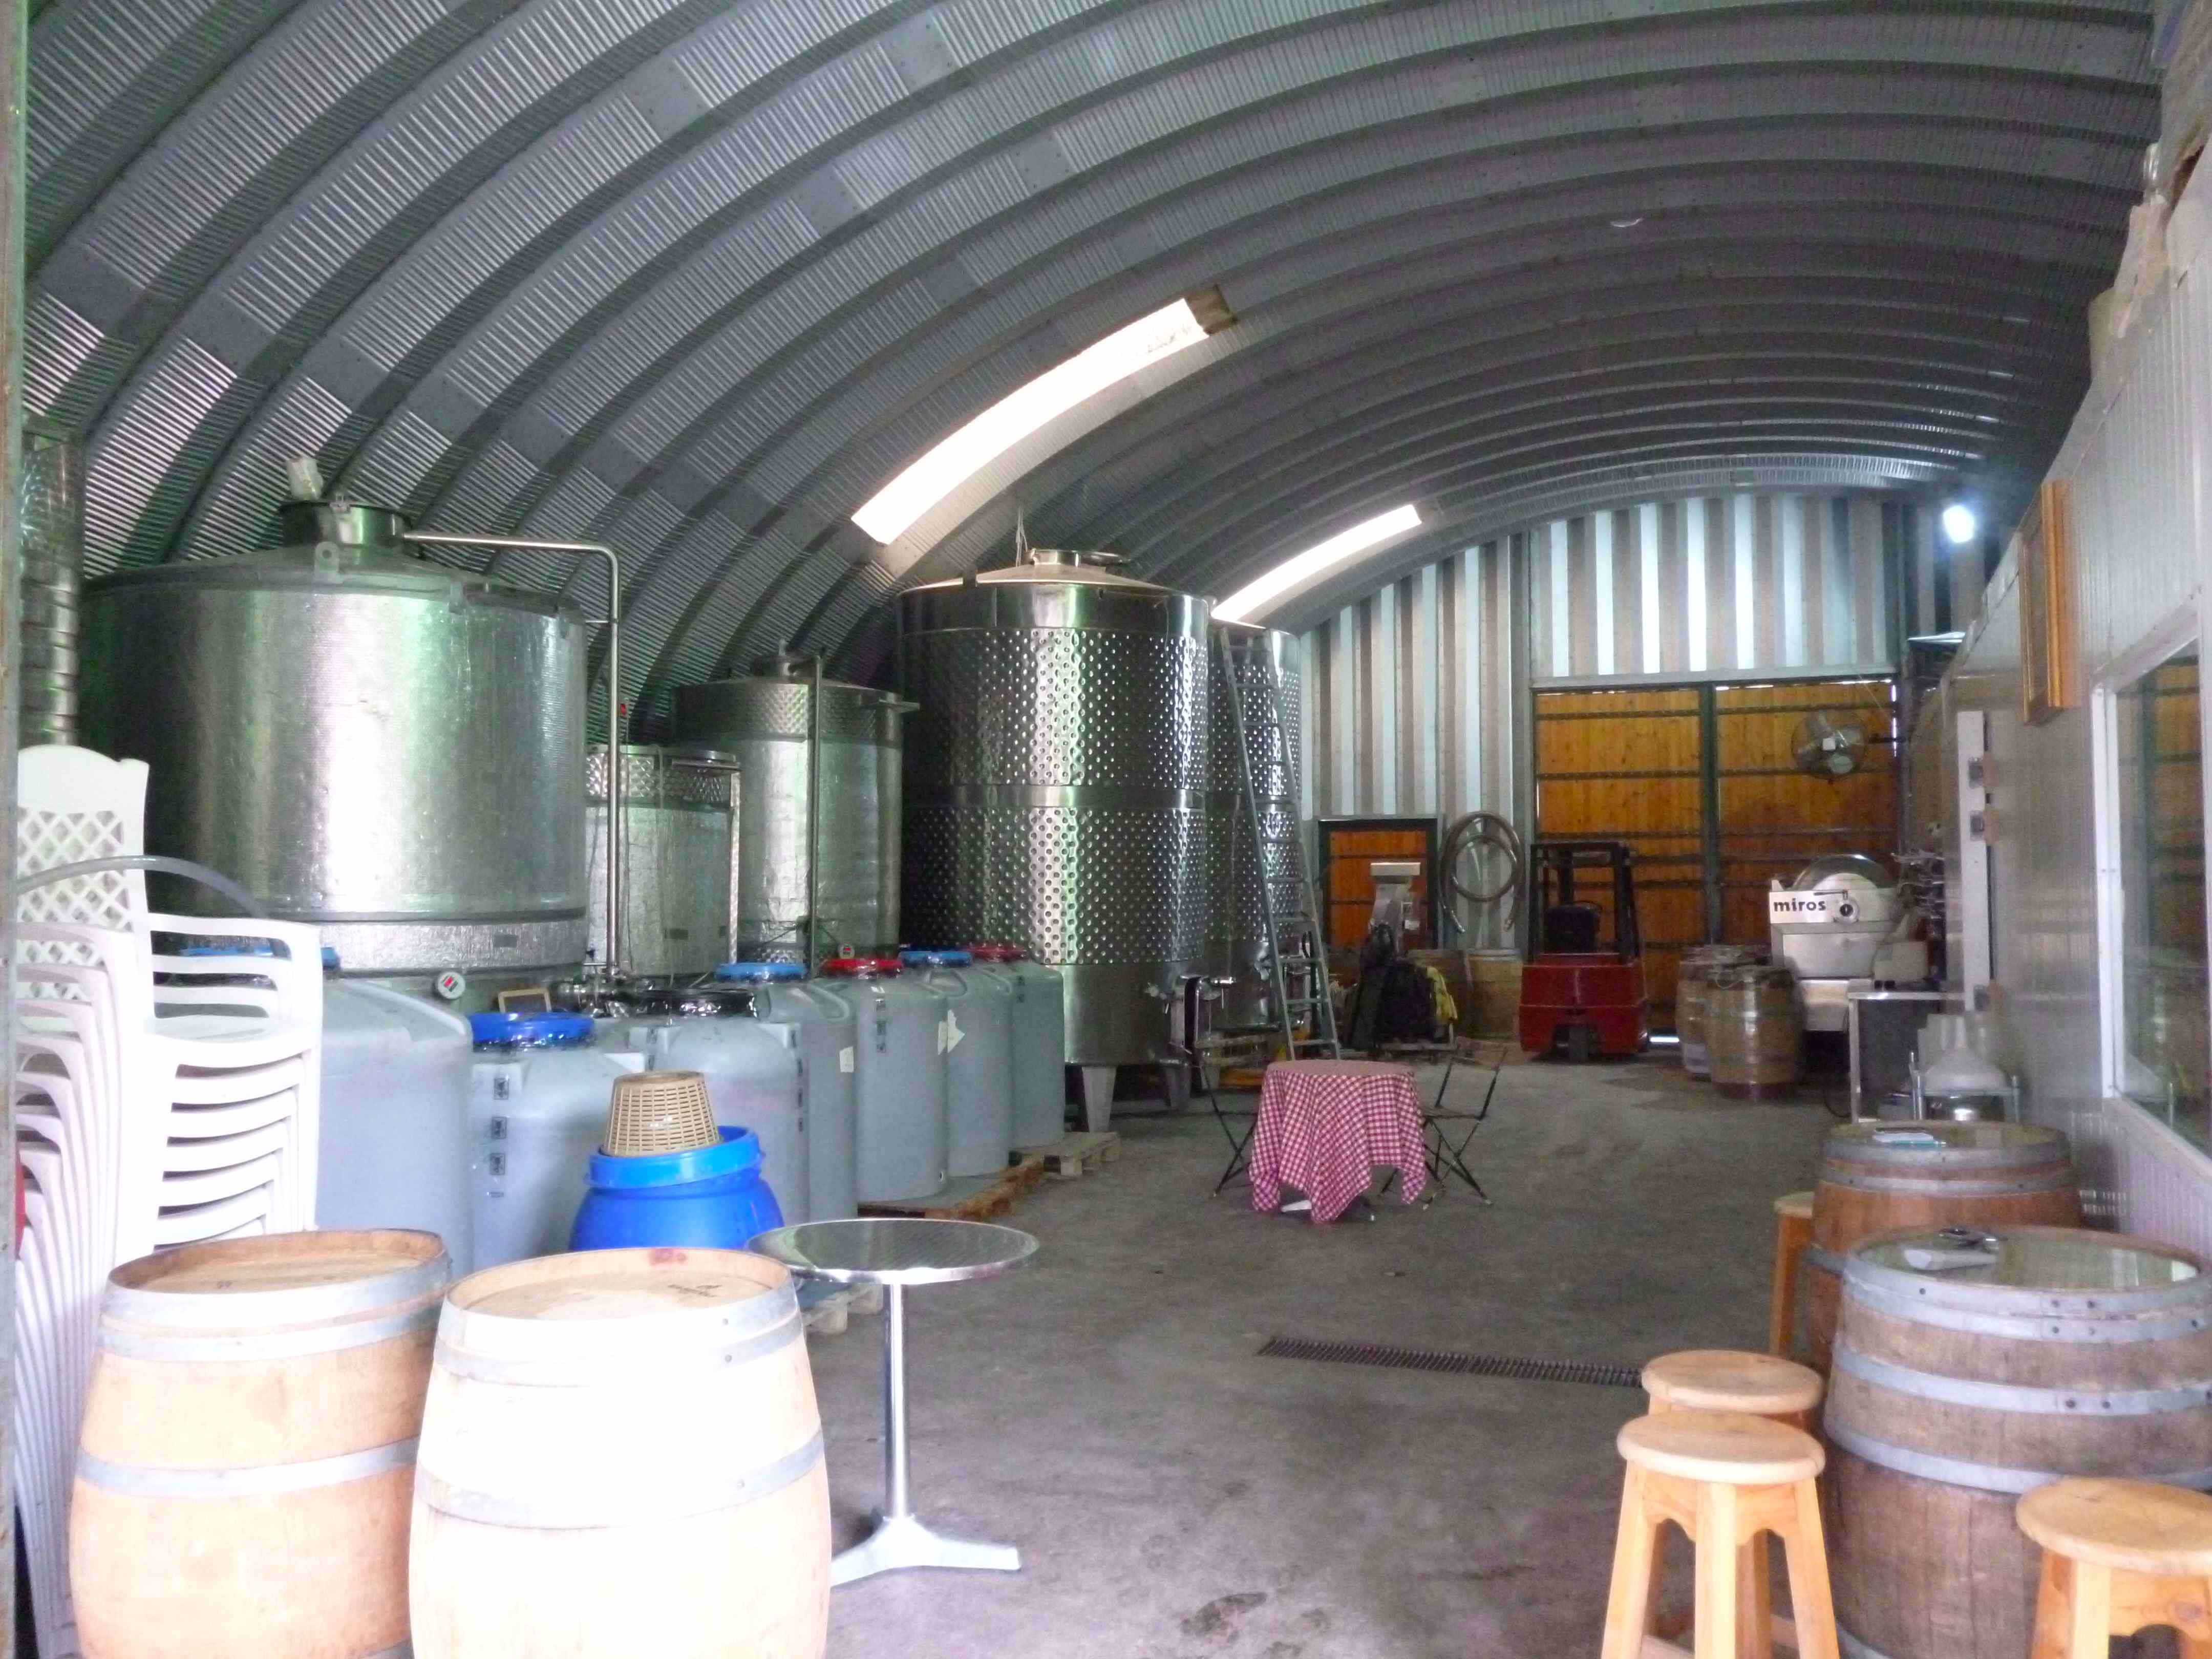 Israel Wineries I Visited In The Judean Hills And The